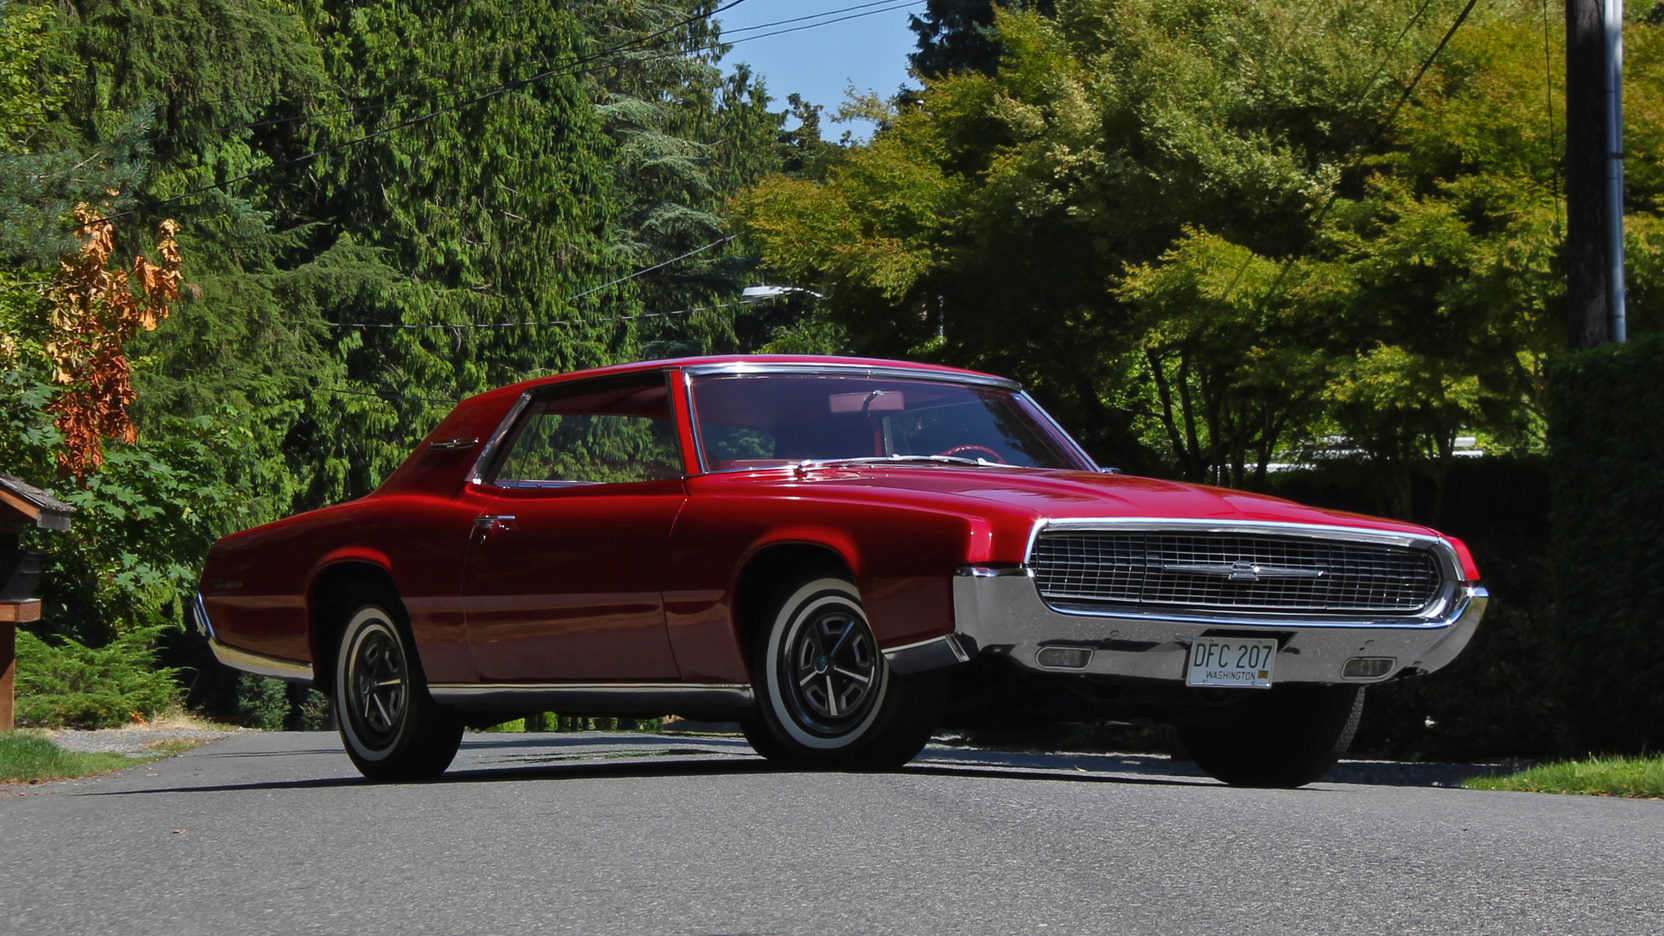 1967 Ford Thunderbird front 3/4